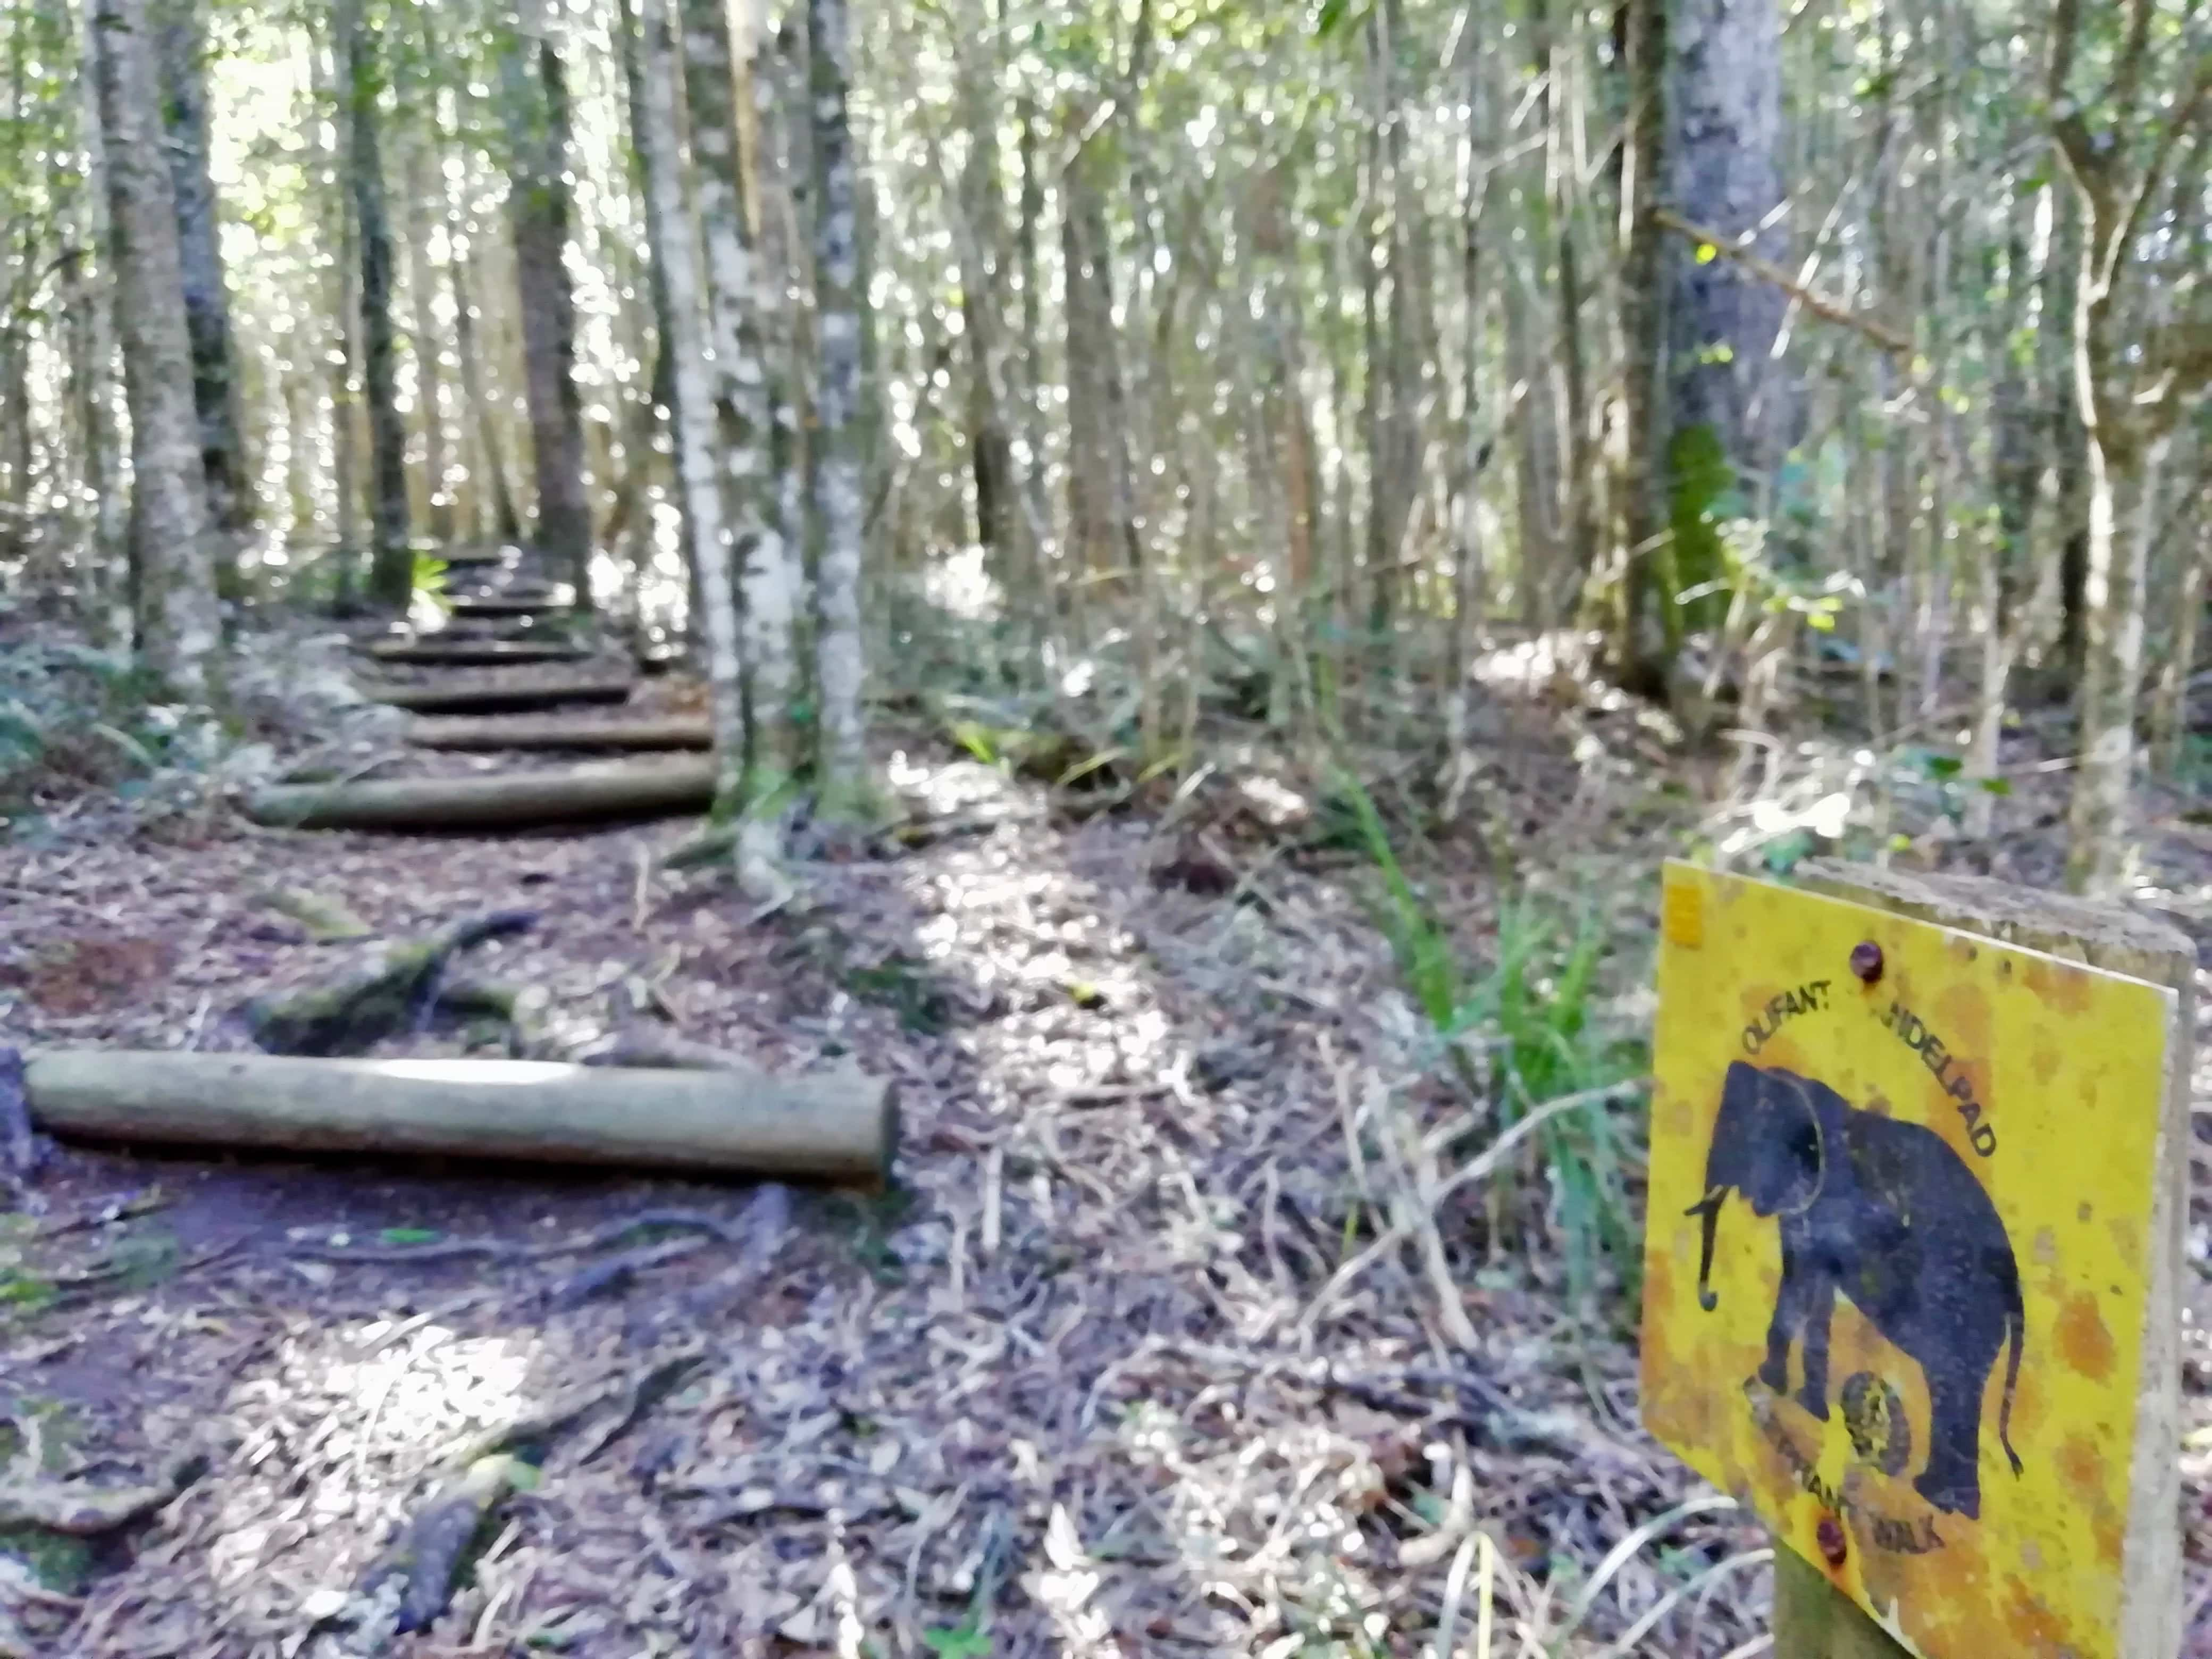 Black Elephant Loop hike at Diepwalle Forest Station, Garden Route